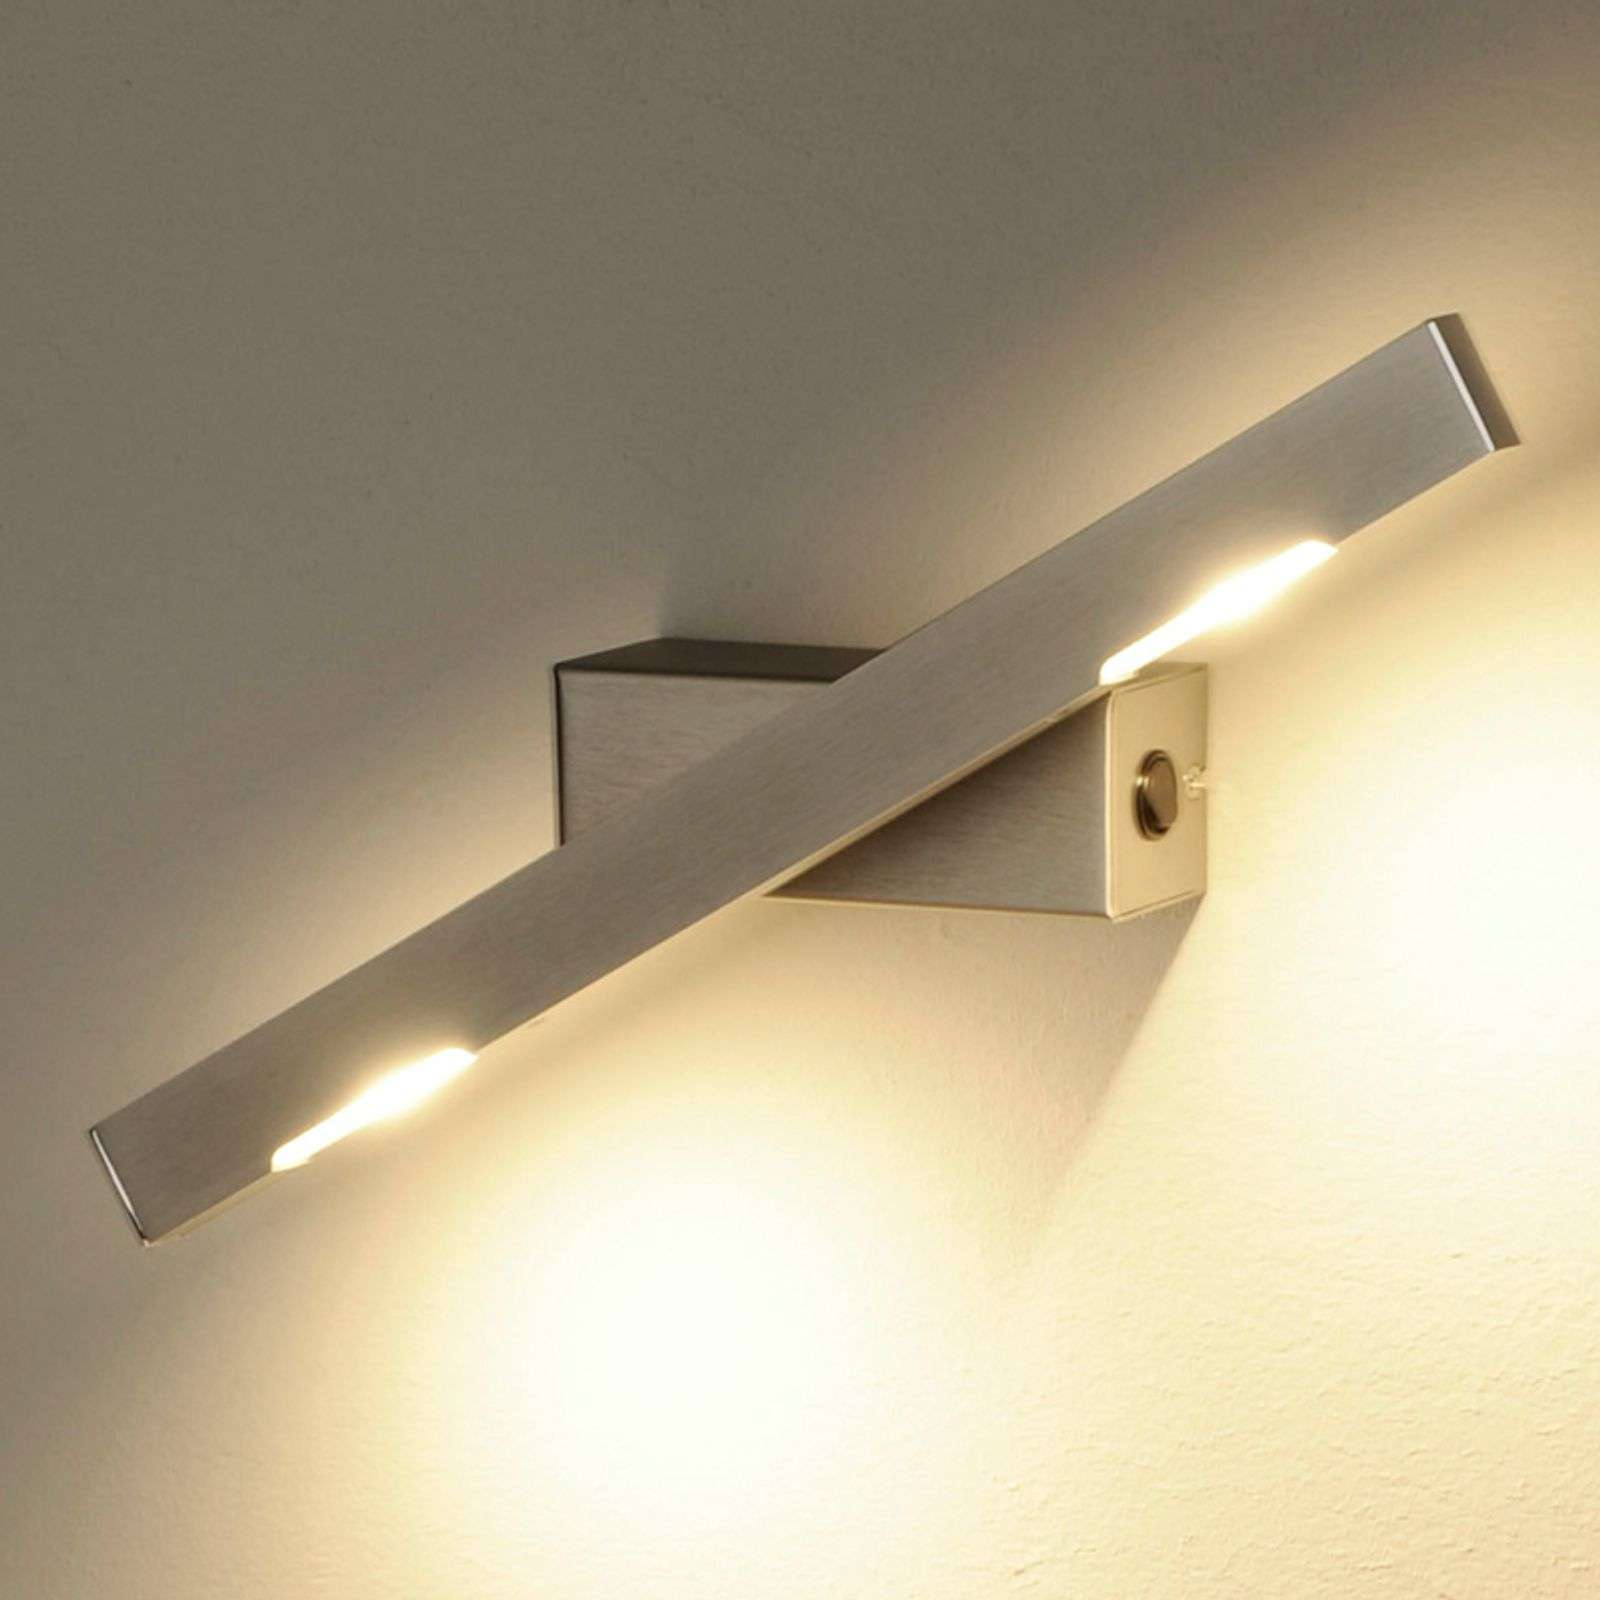 Applique LED Sina nickel mat 40 cm